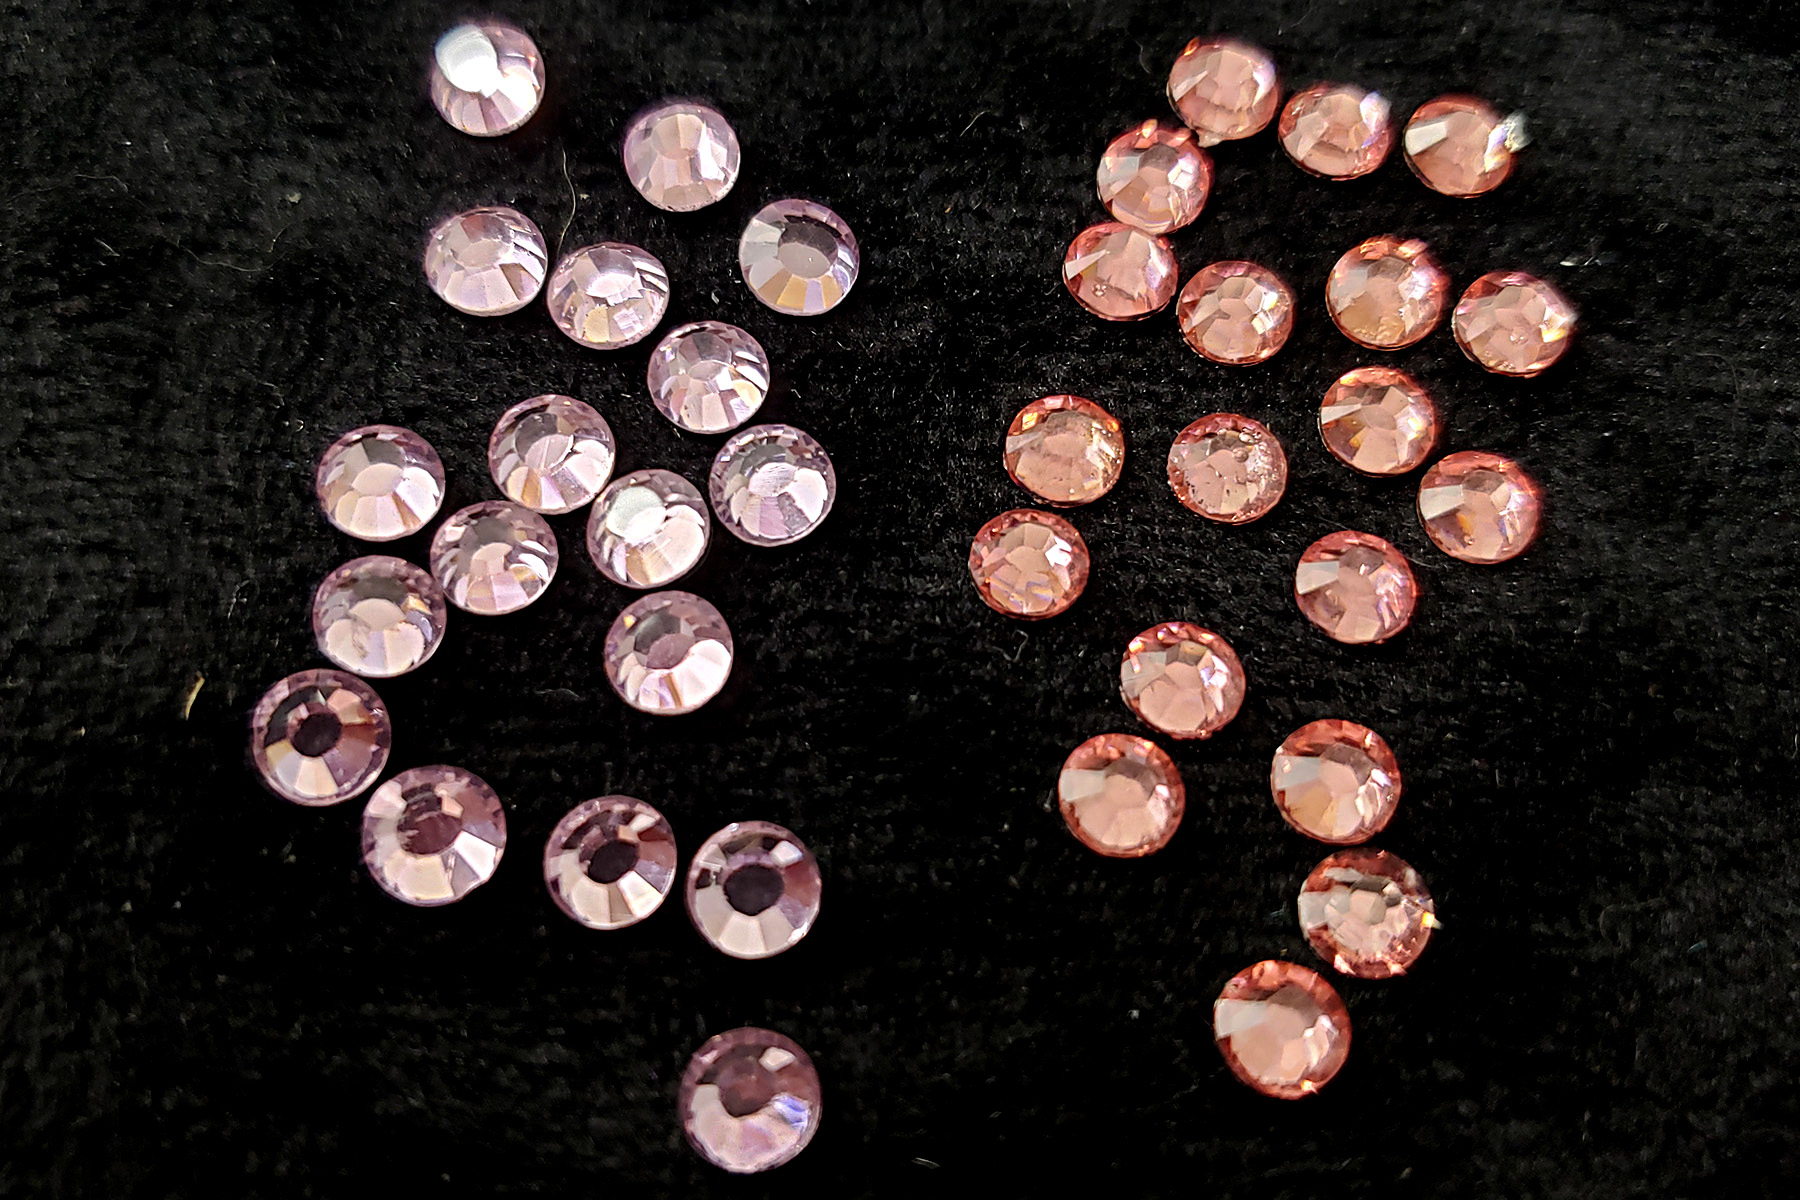 Small piles of two different pink rhinestones, against a black background.